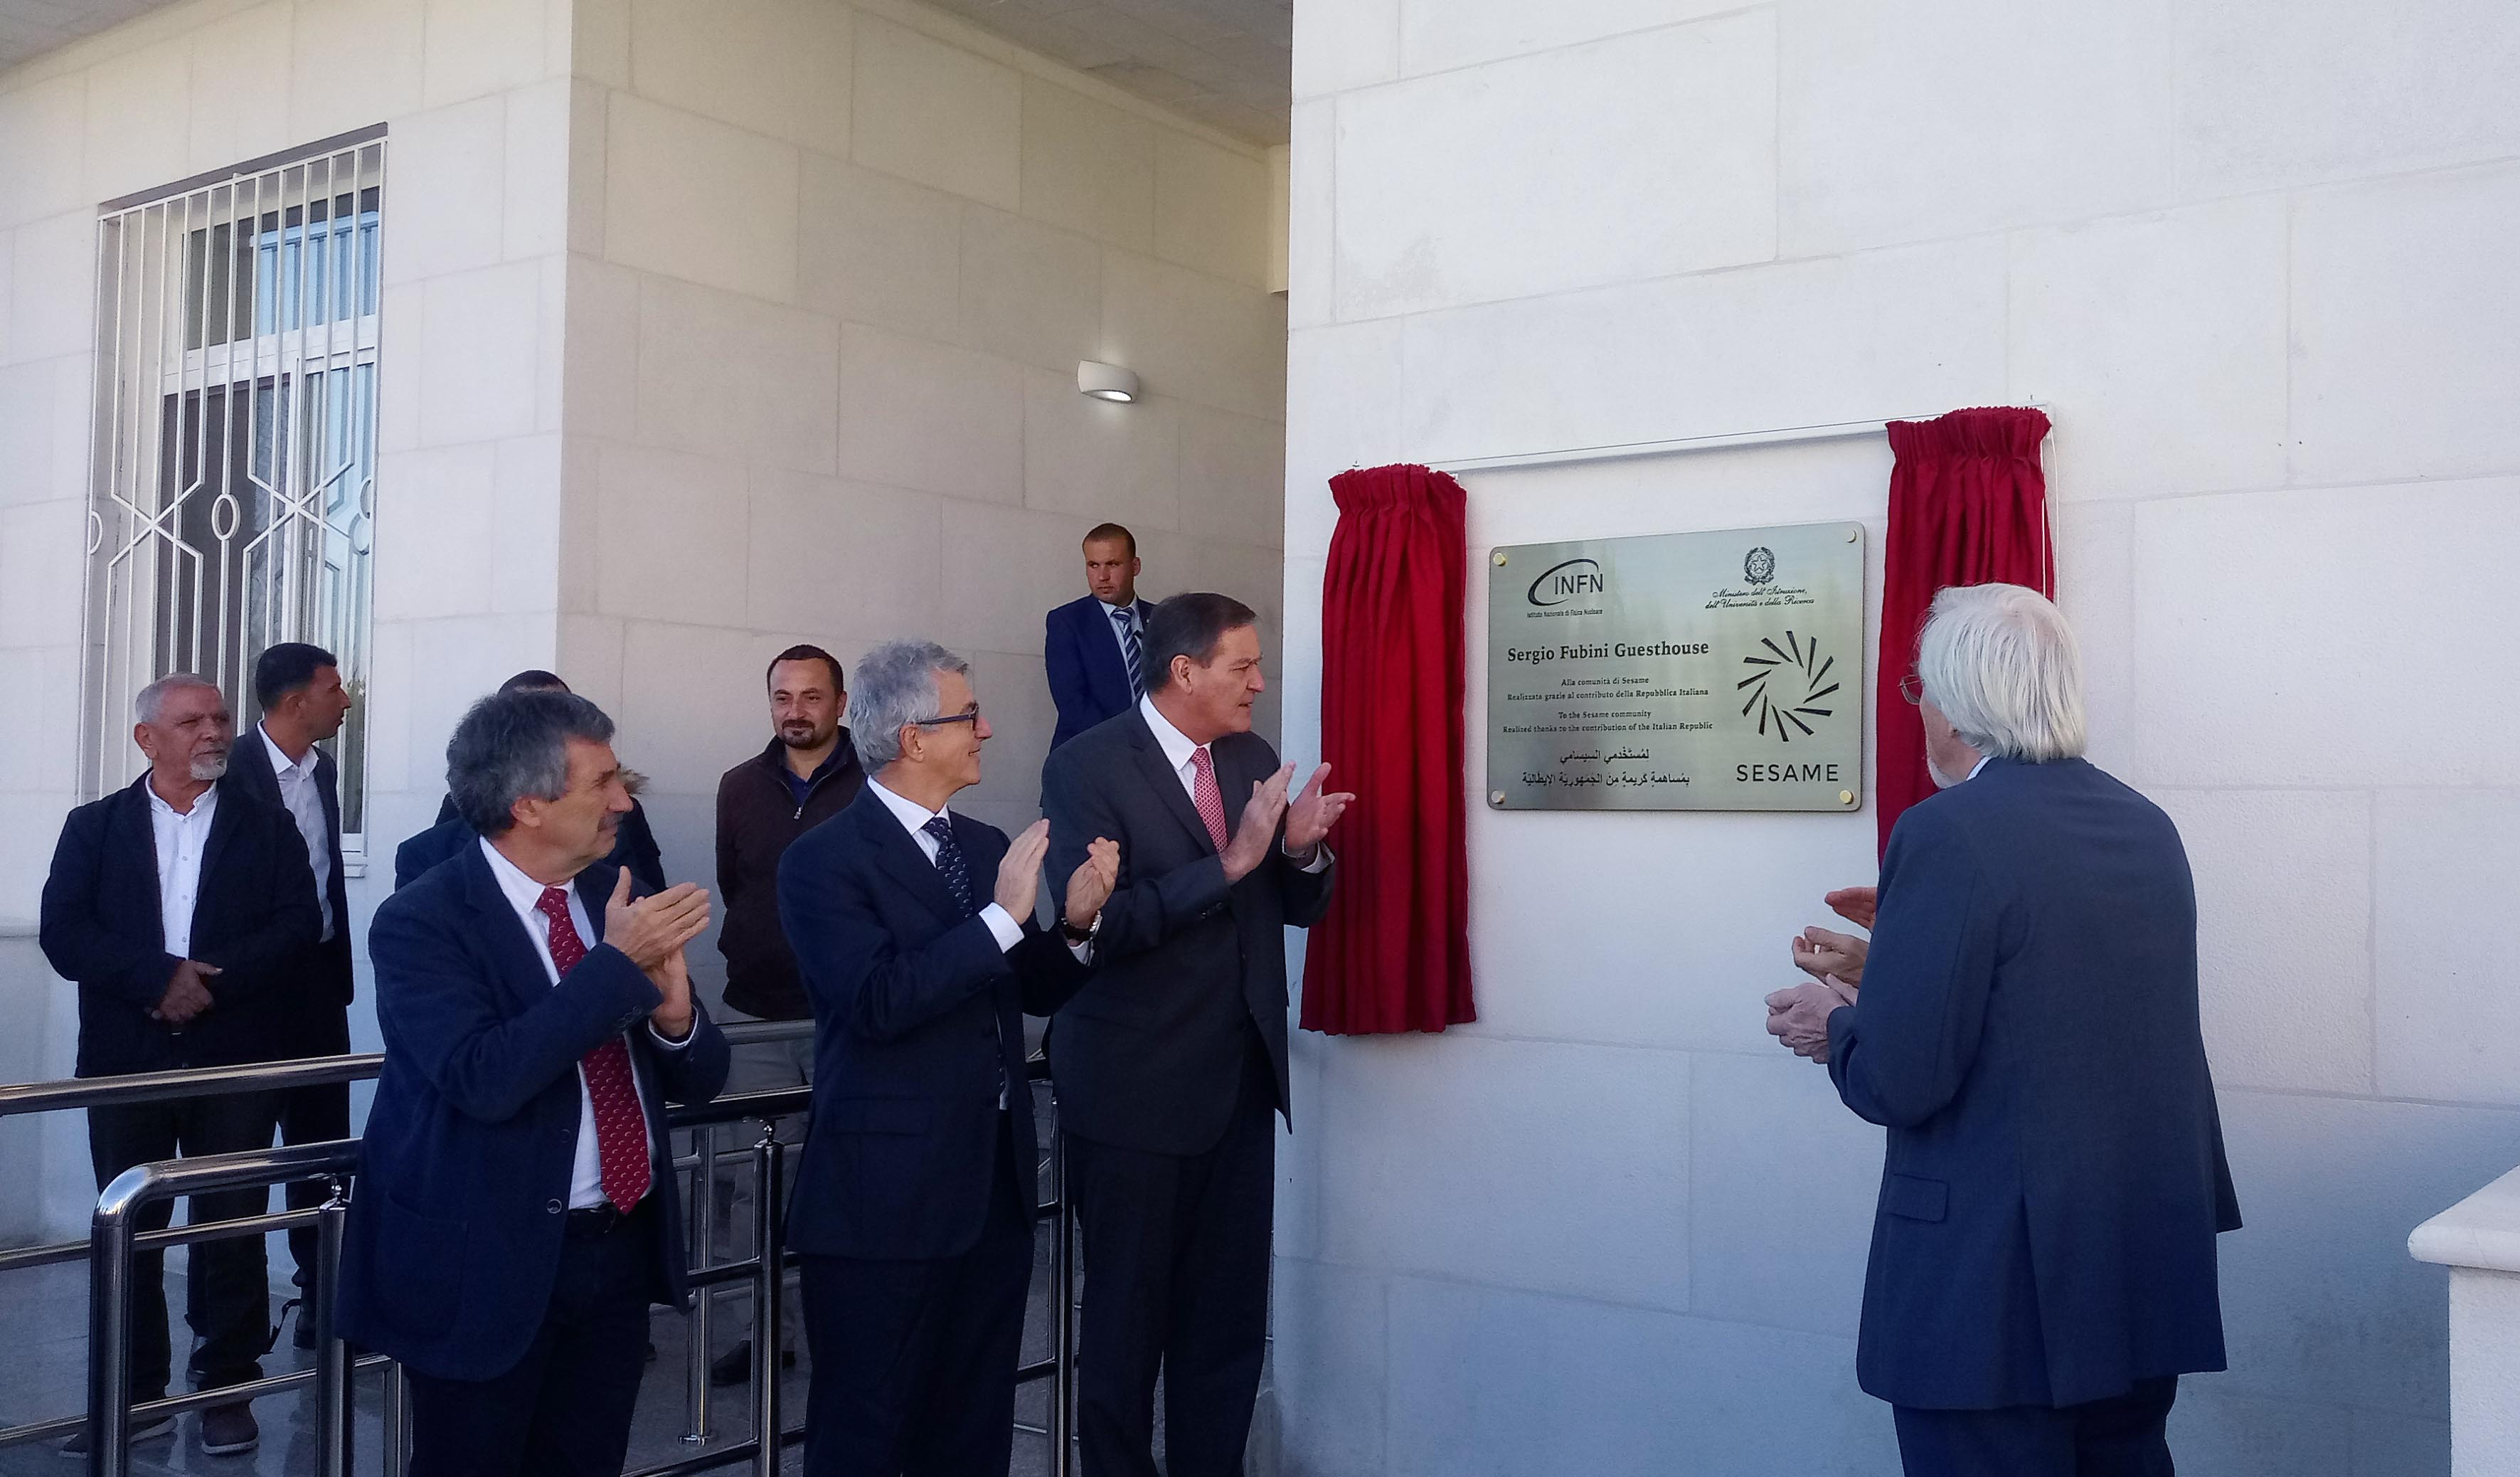 THE SESAME GUEST HOUSE IS INAUGURATED WITH THE CONTRIBUTION OF ITALY